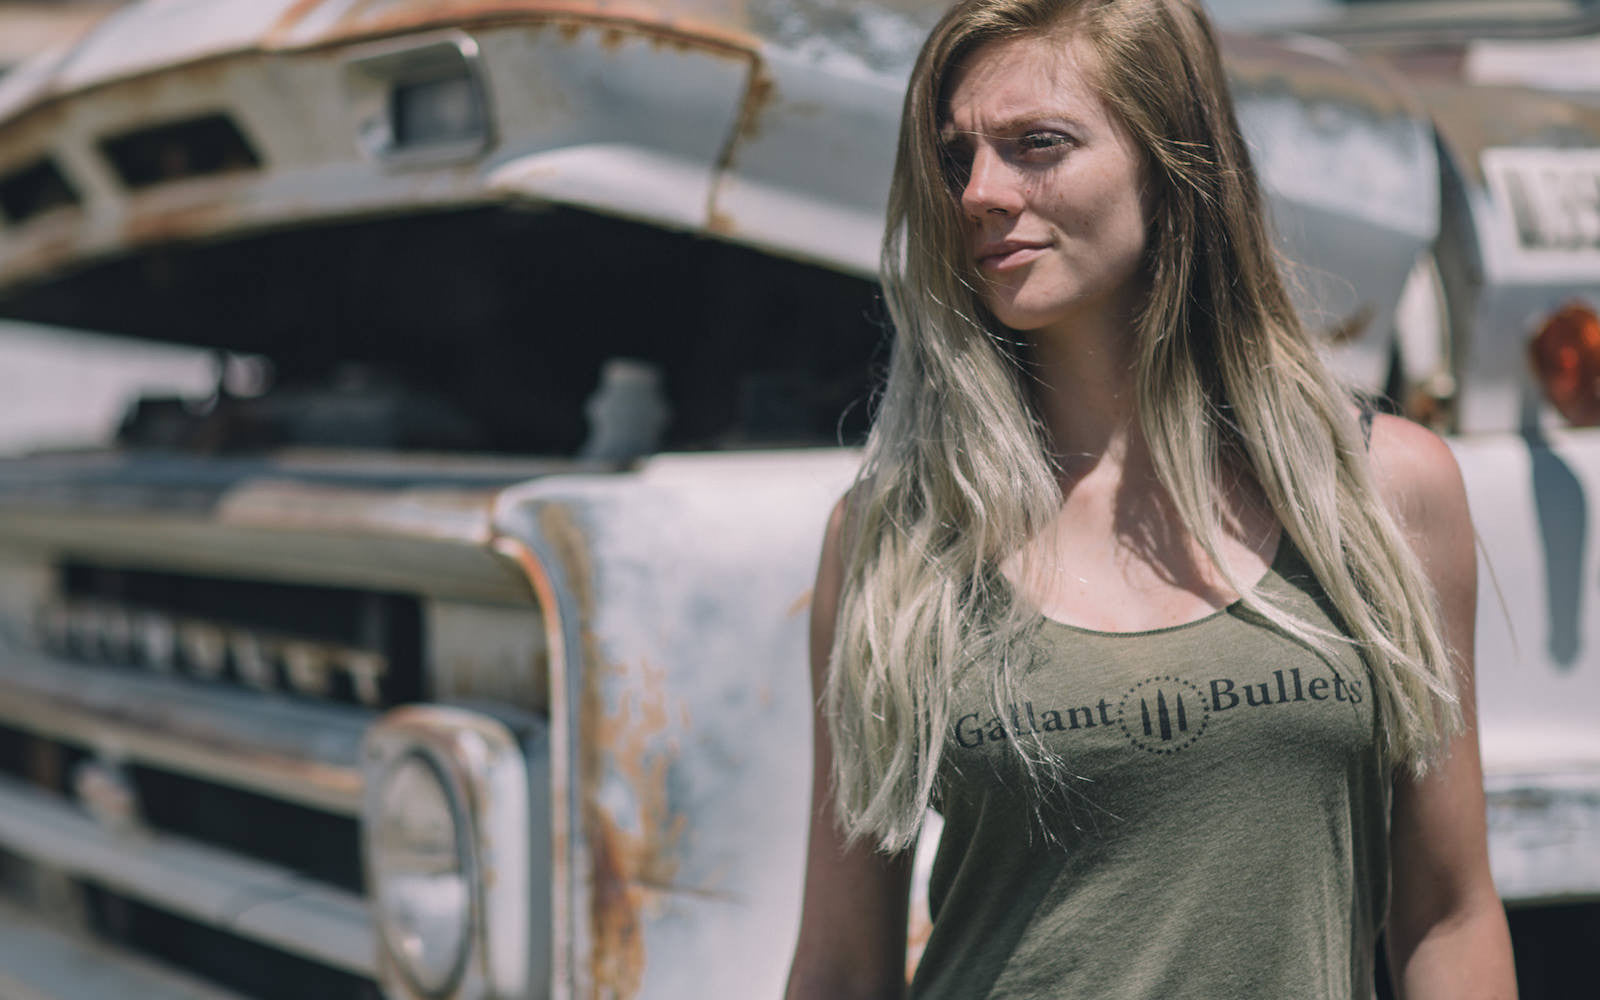 Women's Tank Top by Gallant Bullets